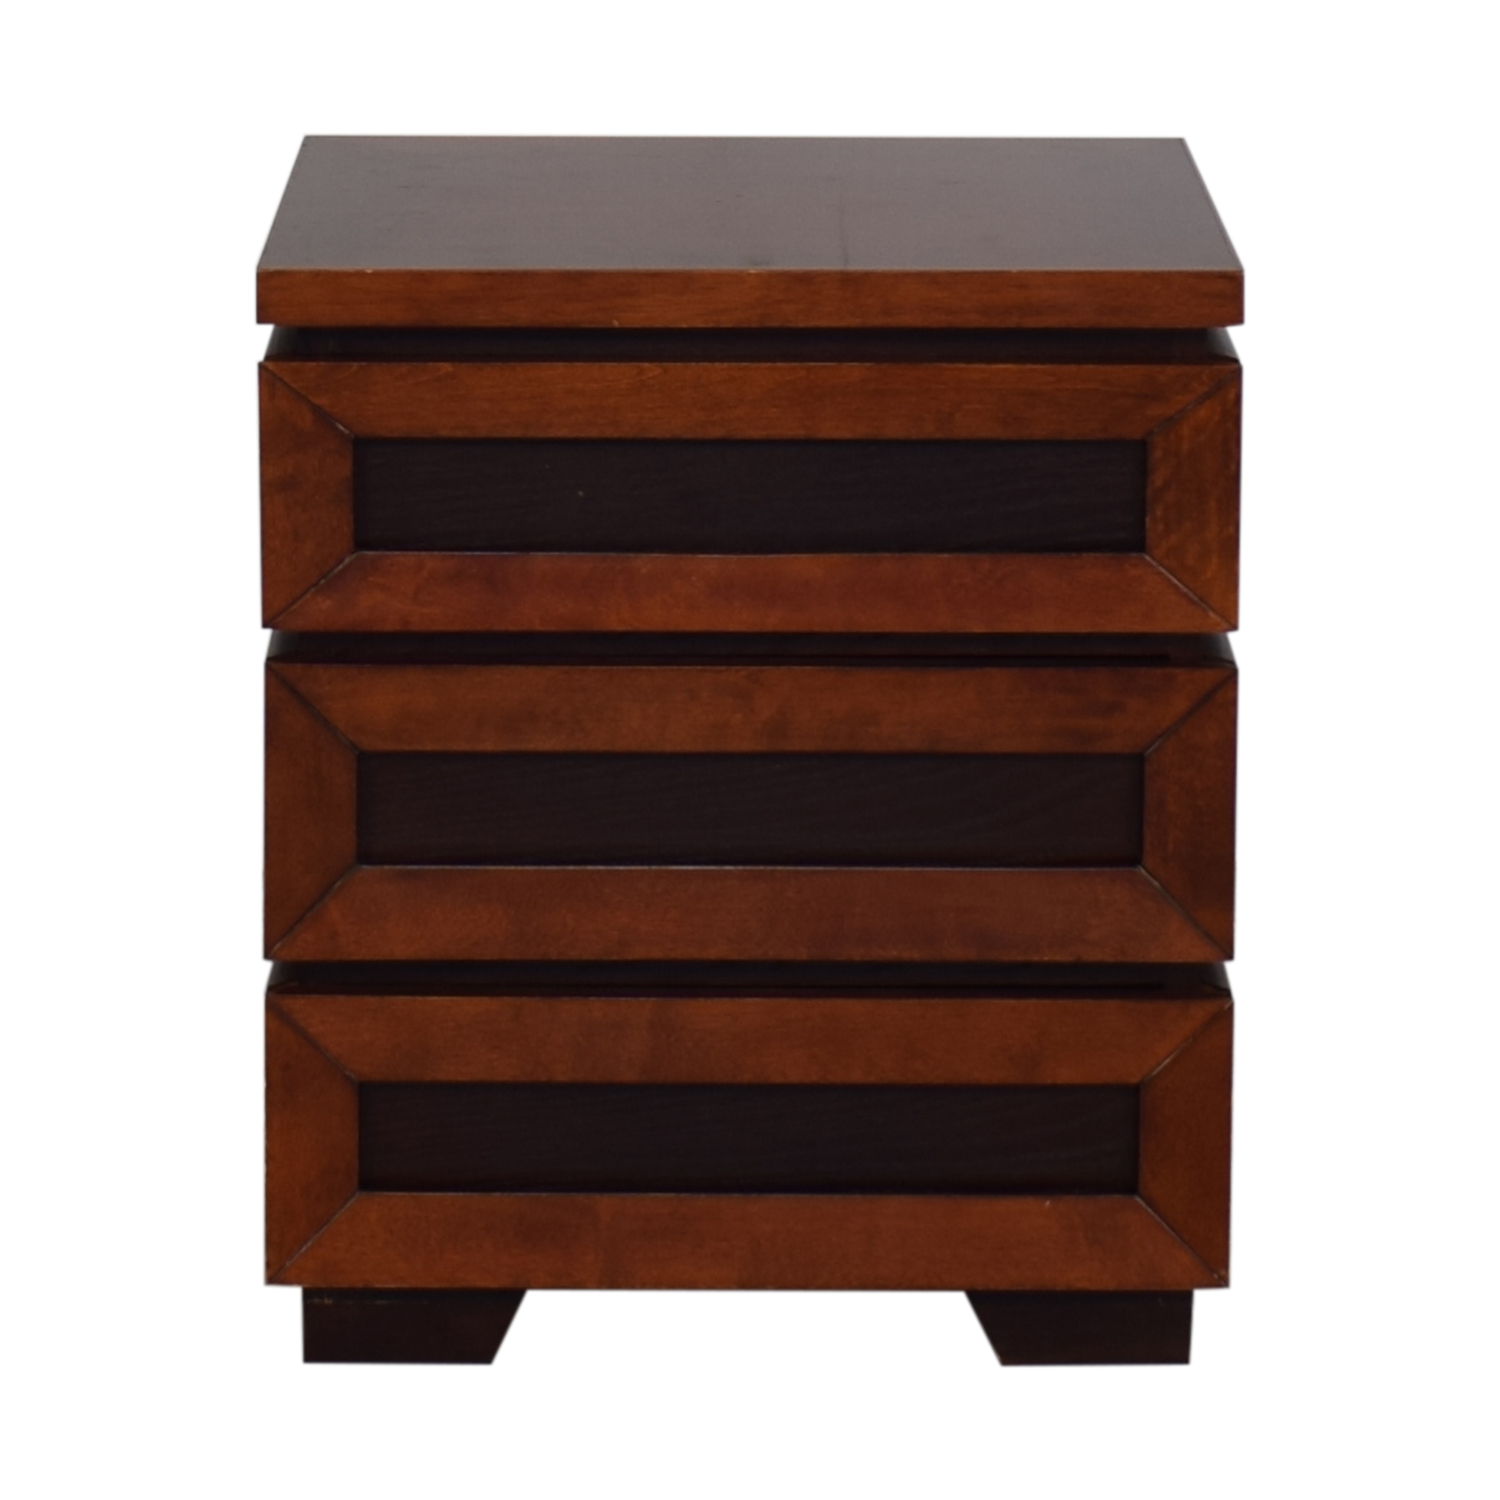 buy Crate & Barrel Side Table with Drawers Crate & Barrel